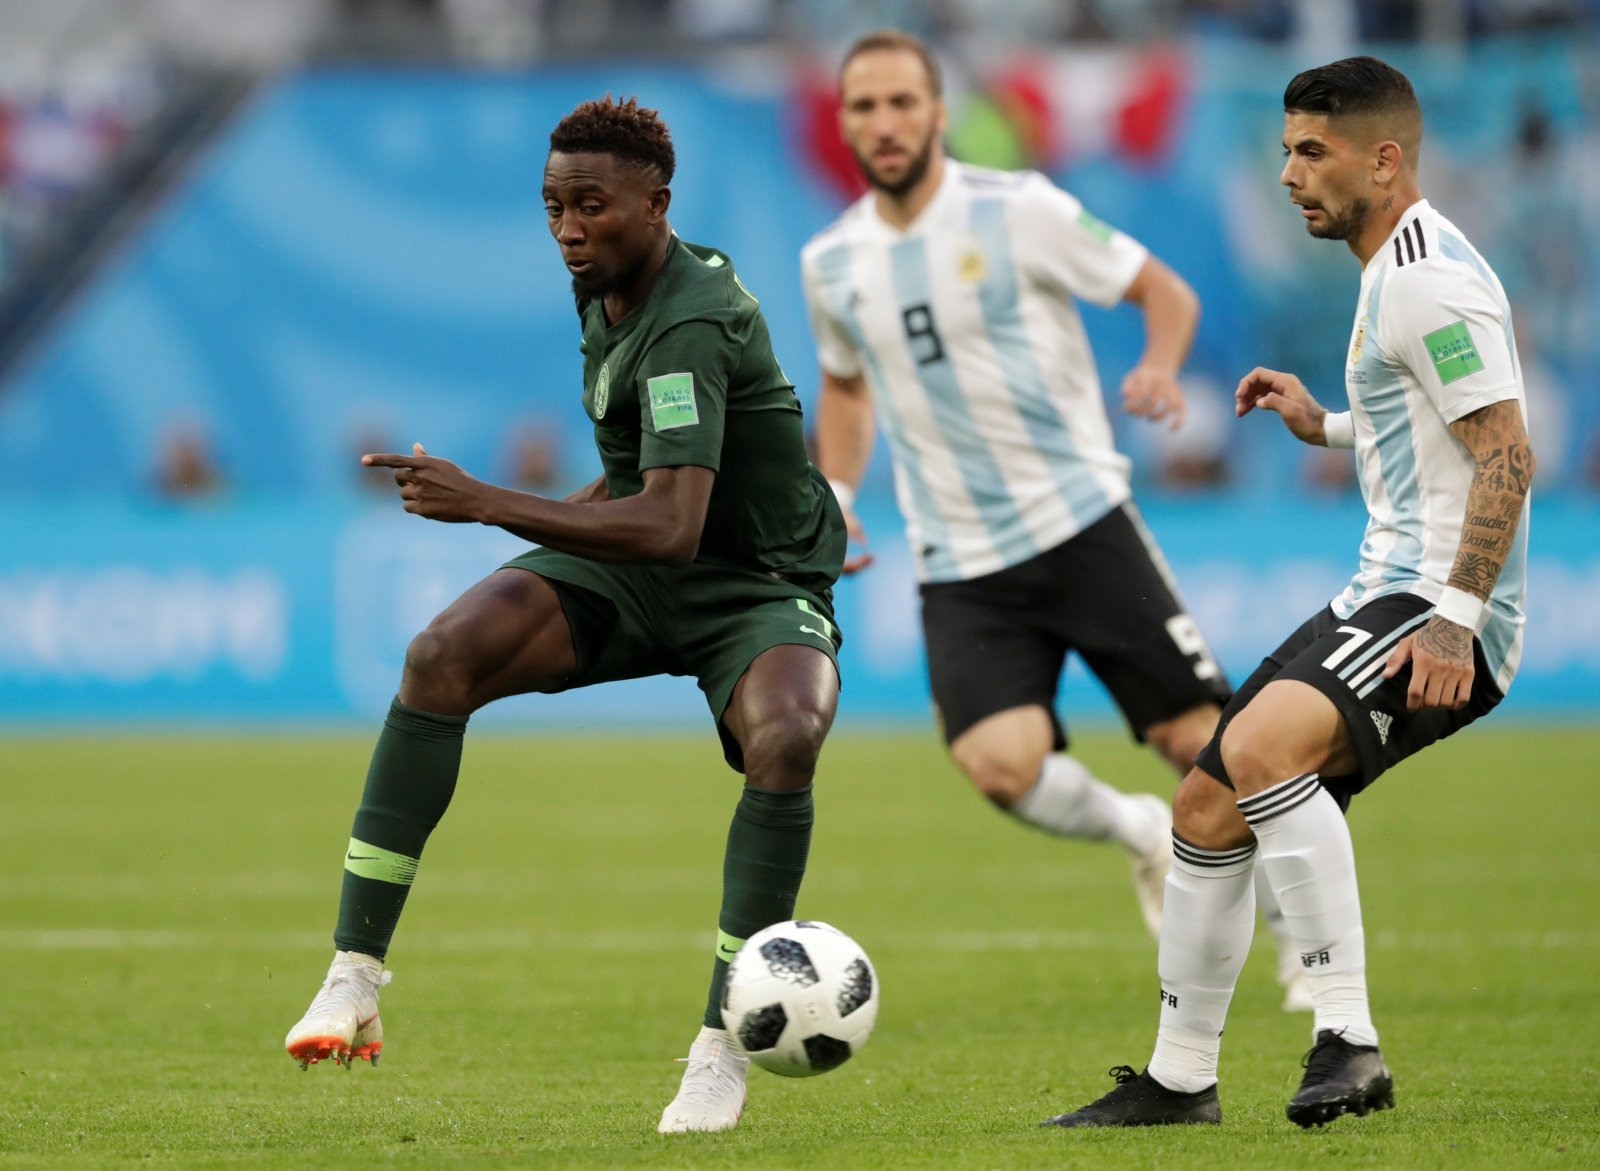 Stefano Sturaro to Leicester should increase Man City's chances of signing Wilfred Ndidi